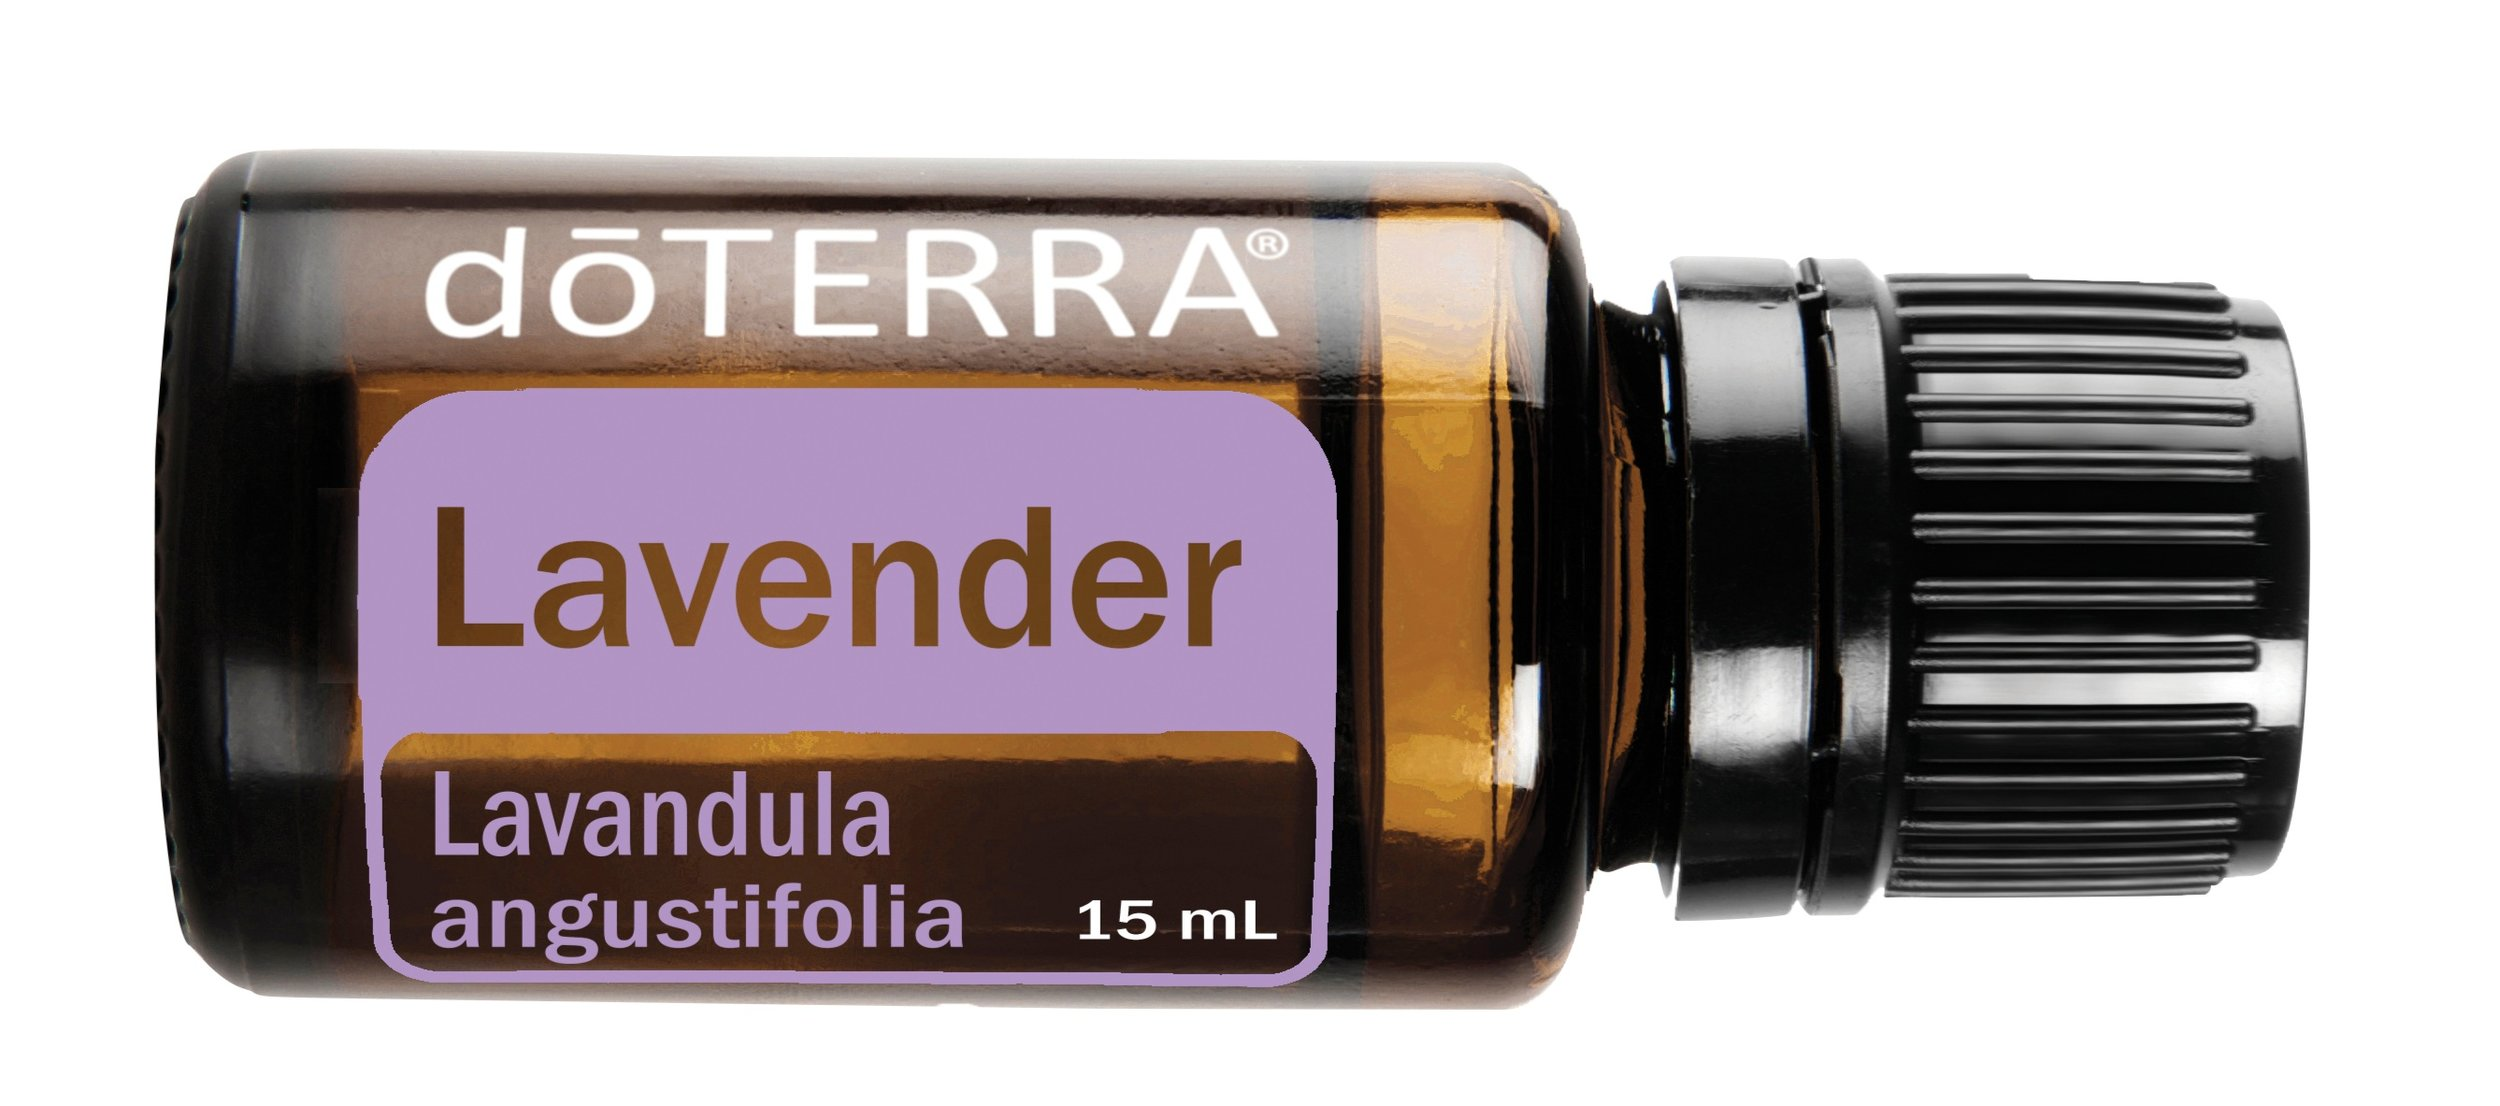 """Lavender    Take A Lavender Bath.  Drop a bit of lavender essential oil along with Epsom salts to your bath water for an ultra-relaxing experience.  Head To Toe Rest!  After a hard work out or a long day on your feet, rub Lavender along with Lemongrass on your legs and feet. It will help soothe sore muscles and fully rest.  Take The Acrid Out Of Vinegar.  Add 4-5 drops of Lavender to your vinegar cleaning mixture for a more bearable scent.  Quick Fix.  Mix three parts Fractionated Coconut Oil with one part Lavender essential oil in a small spray bottle or roll on to help clear up skin irritation associated with chafing. Great for little ones!  Bring on the ZZZ's.  Rub on the bottoms of the feet for a more restful sleep.  Enjoy A Fresh And Clean Mattress.  Sprinkle a mixture of 1 cup baking soda and 10 drops of lavender essential oil over your mattress. Allow the mixture to sit for at least one hour then use the vacuum hose to clean it up. You can combine with drops of Eucalyptus, Peppermint, Clove, or Rosemary as well.  Ouch! That's Hot!  The next time someone doesn't realise the iron or pan is still hot; apply Lavender oil to the affected area to soothe skin irritation, relieve redness and ease swelling.  The Oatmeal Secret . Fill a baby food jar with oatmeal, and add 5-8 drops of Lavender oil. When it's time to wash your face, add water and it becomes an excellent natural scrub! A little goes a long way.  A Sleepy Time Trick.  A few drops of Lavender placed on a pillow will help a restless toddler (or adult) fall asleep and stay asleep.  Flavour Twist.  Lavender adds a unique and delicious flavour to marinades, custards, breads, cookies, icings, and even honey and syrup.  Homemade Aftershave.  Use after shaving to soothe and soften skin and to lessen the redness and burning caused by razor burn.  Take The """"Ouch"""" Out.  One drop of Lavender will help relieve the pain and sensitivity of occasional sore gums, dry or chapped lips, occasional scrapes and abrasions, or a"""